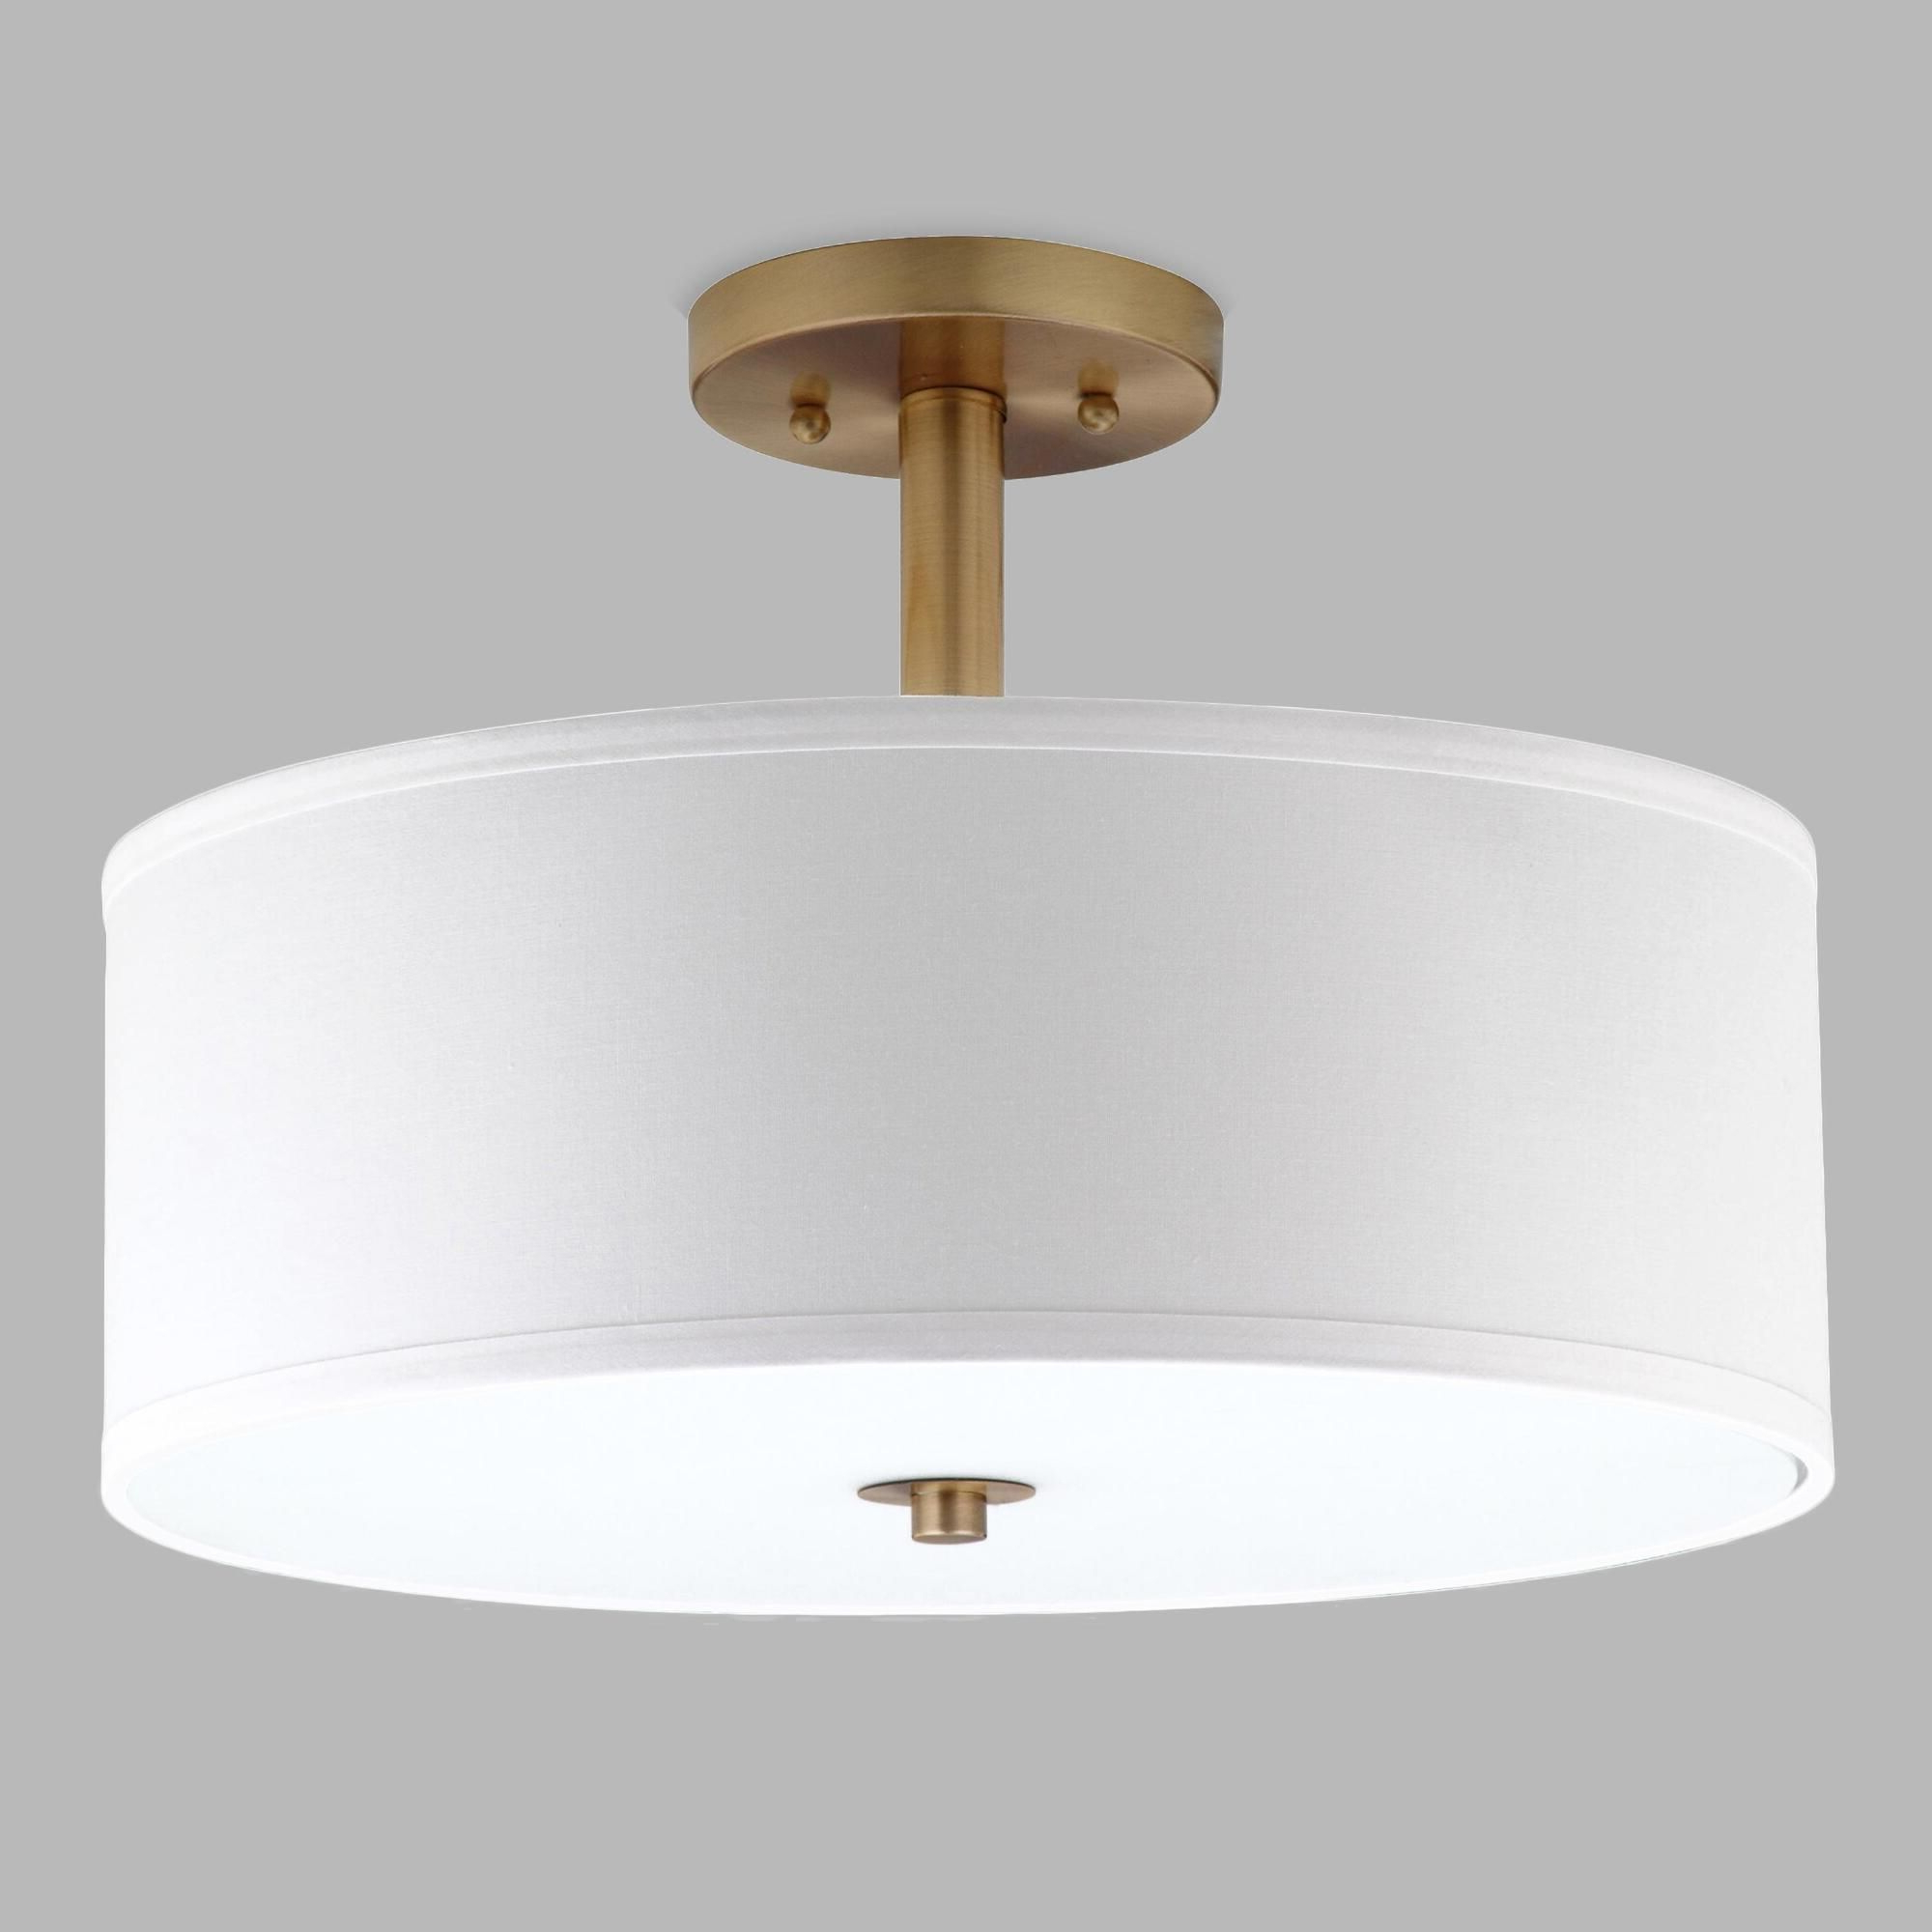 Hermione 1 Light Single Drum Pendants Throughout Famous Gold And White Flush Mount Alysian Ceiling Light: Metallic (Gallery 25 of 25)